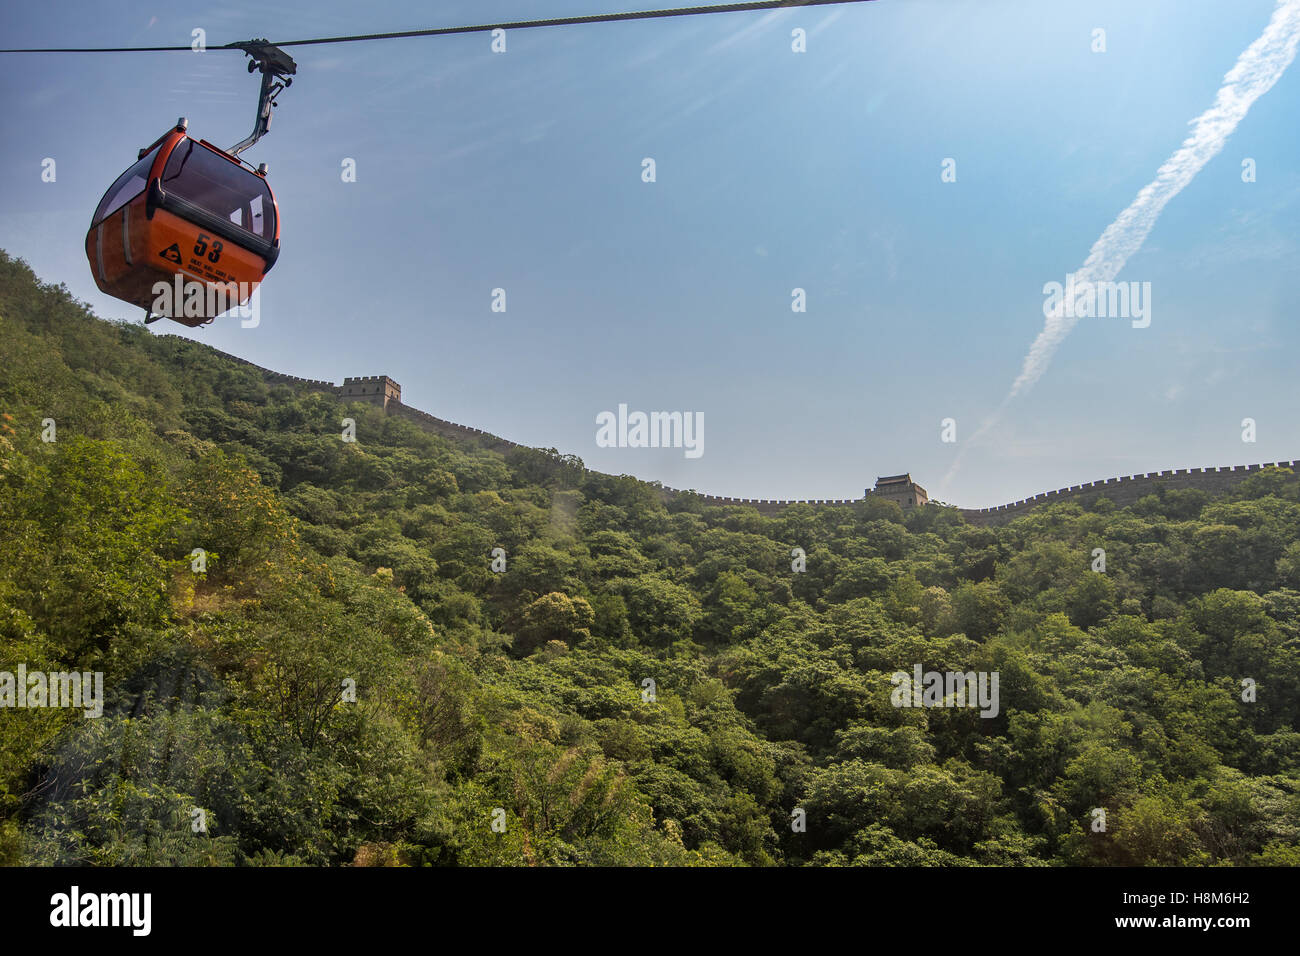 Mutianyu, China - Outside view of a chairlift riding up to the Great Wall of China. The wall stretches over 6,000 - Stock Image